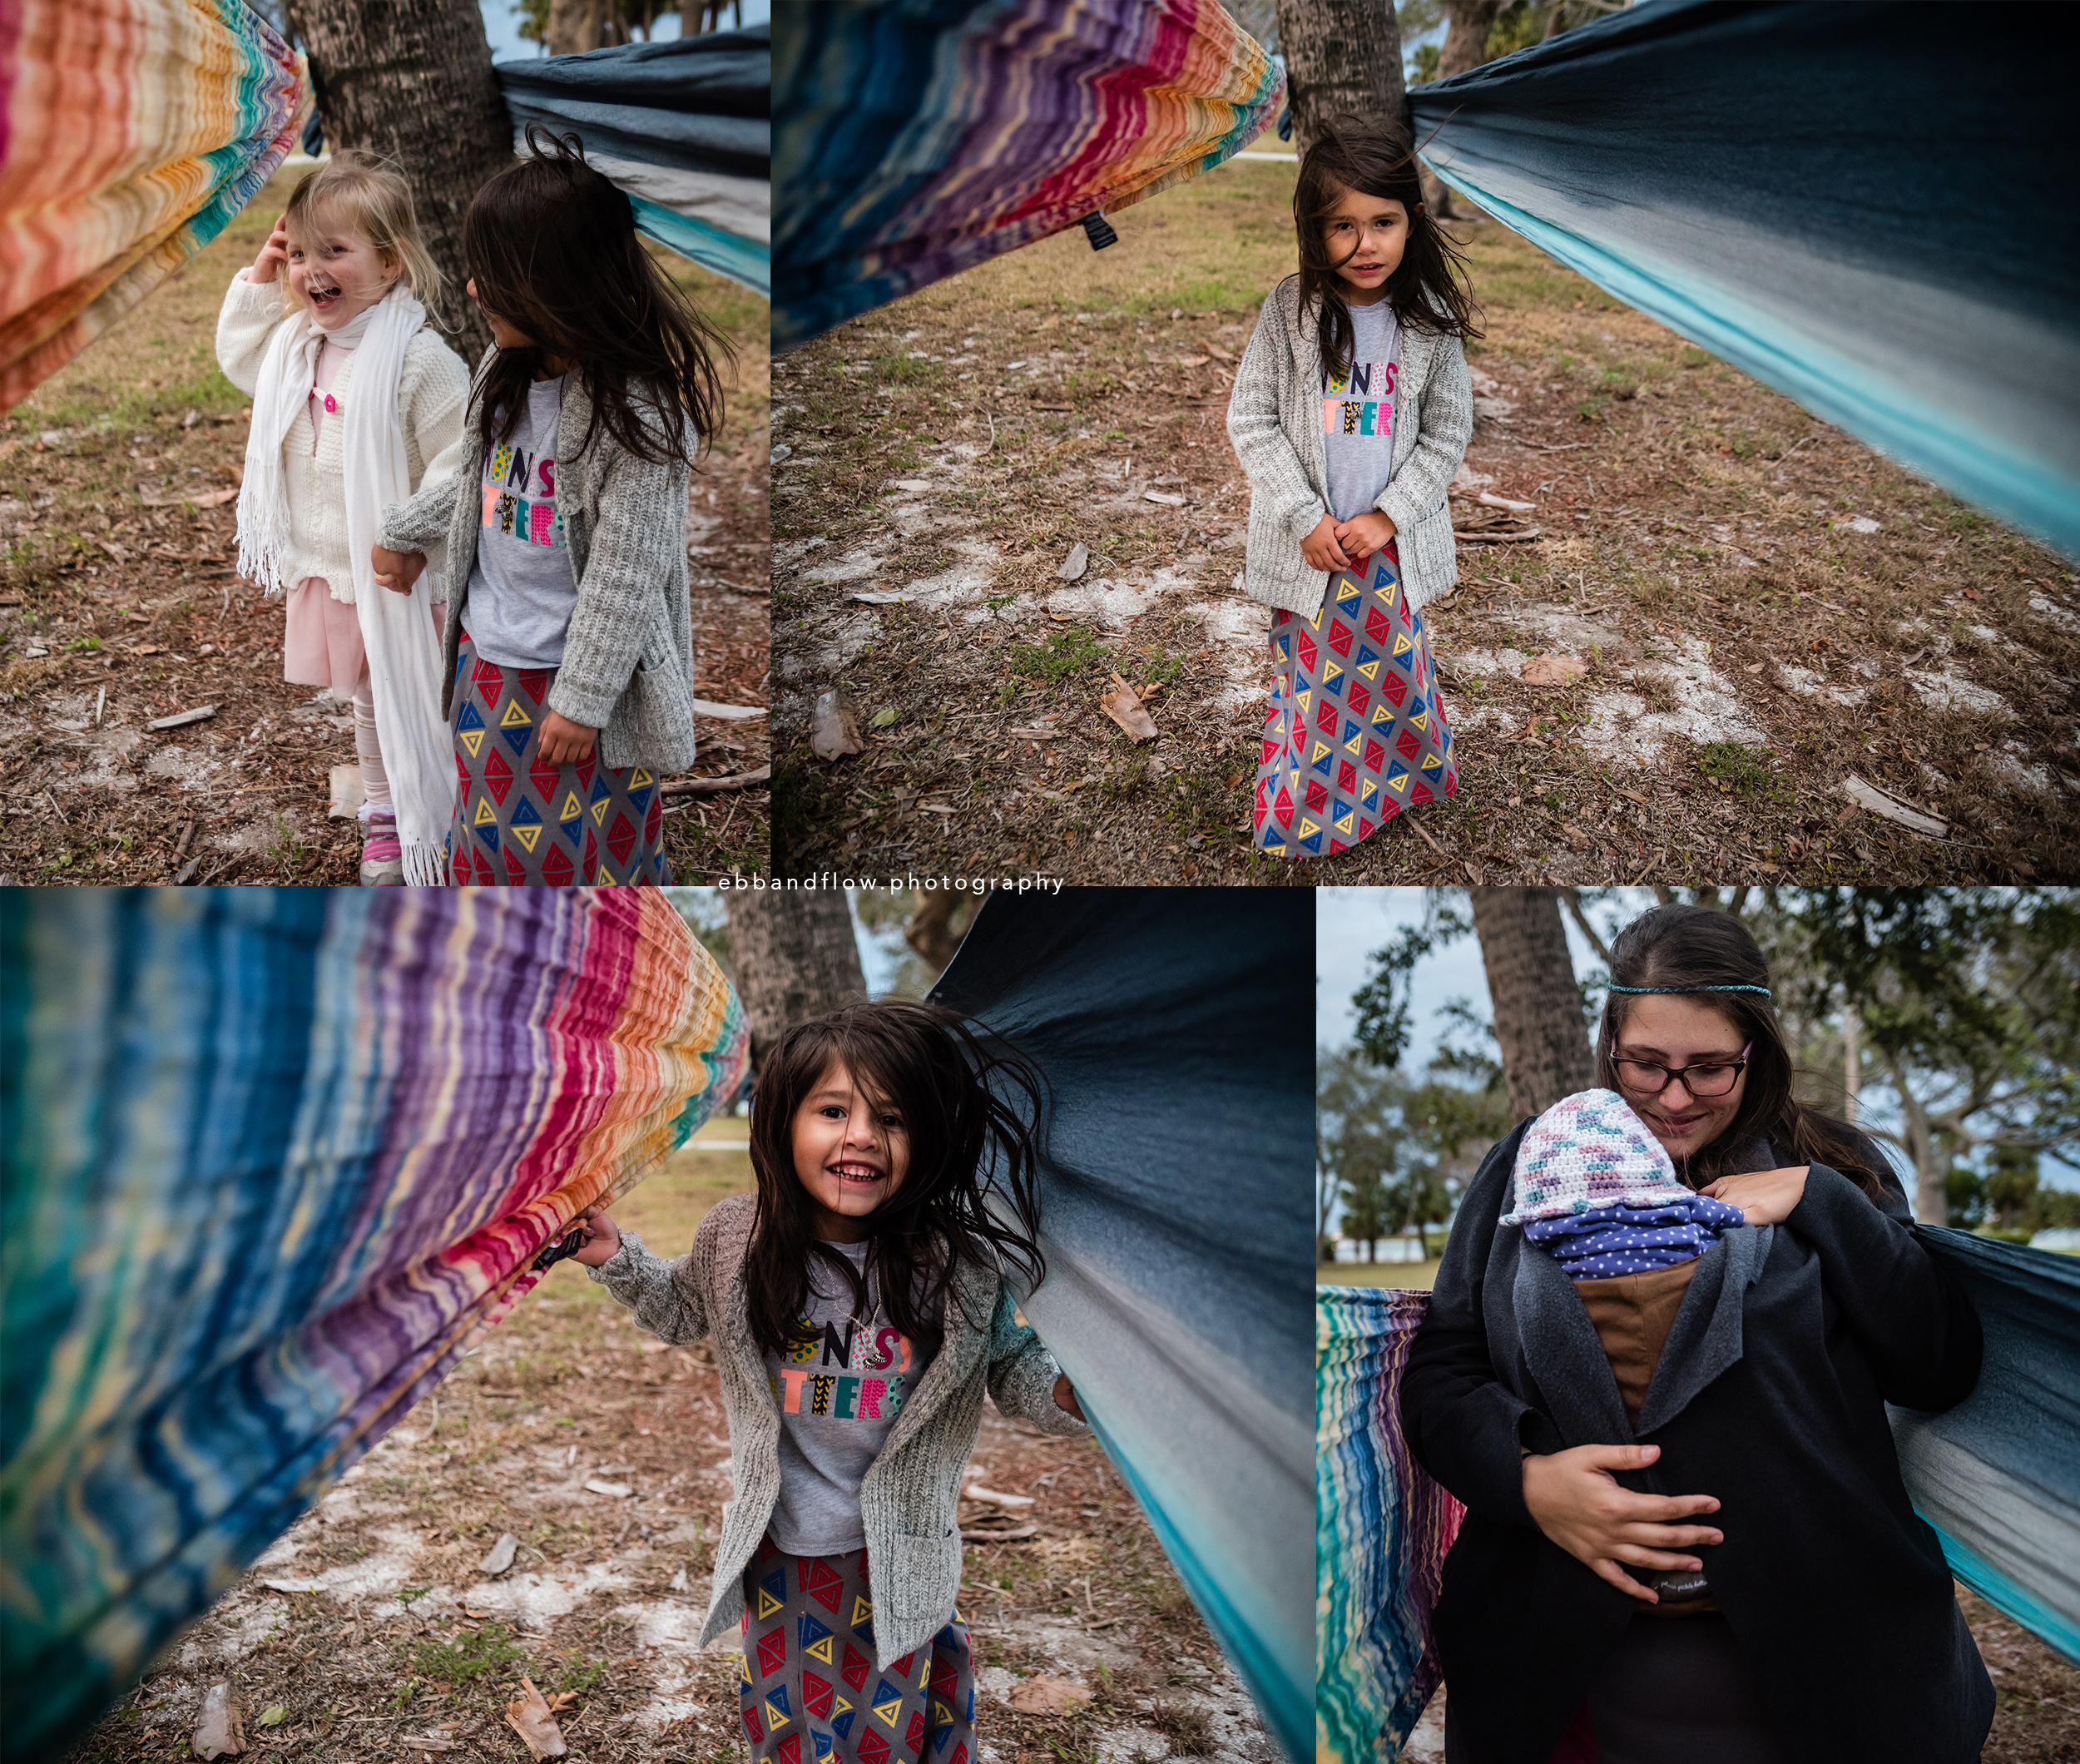 Motherblessing cermony - Ebb and Flow Photography - Treasure Coast Birth Photographer